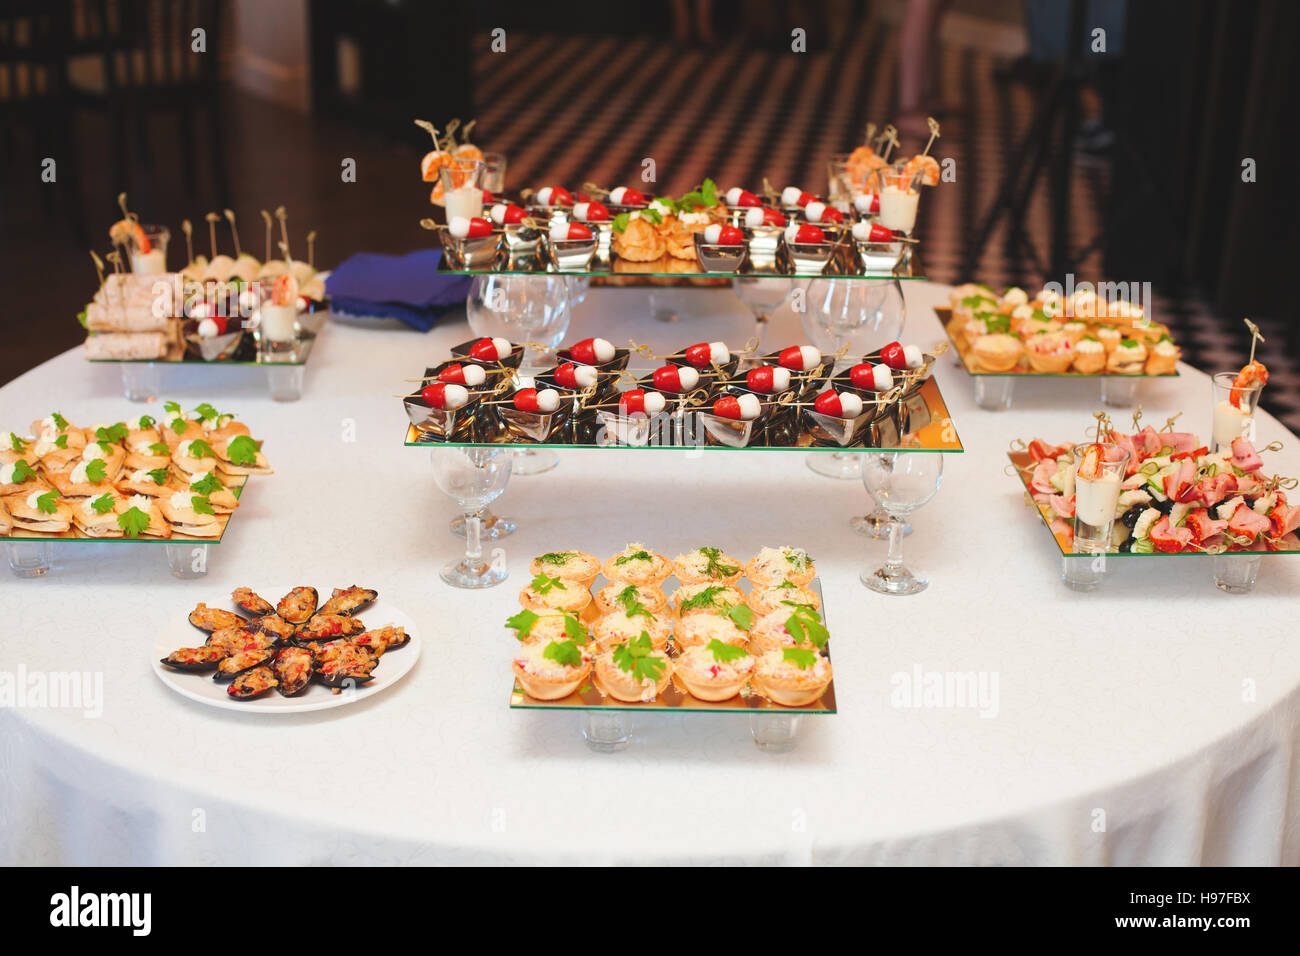 Table with assortment of canapes snacks. Banquet service. - Stock Image